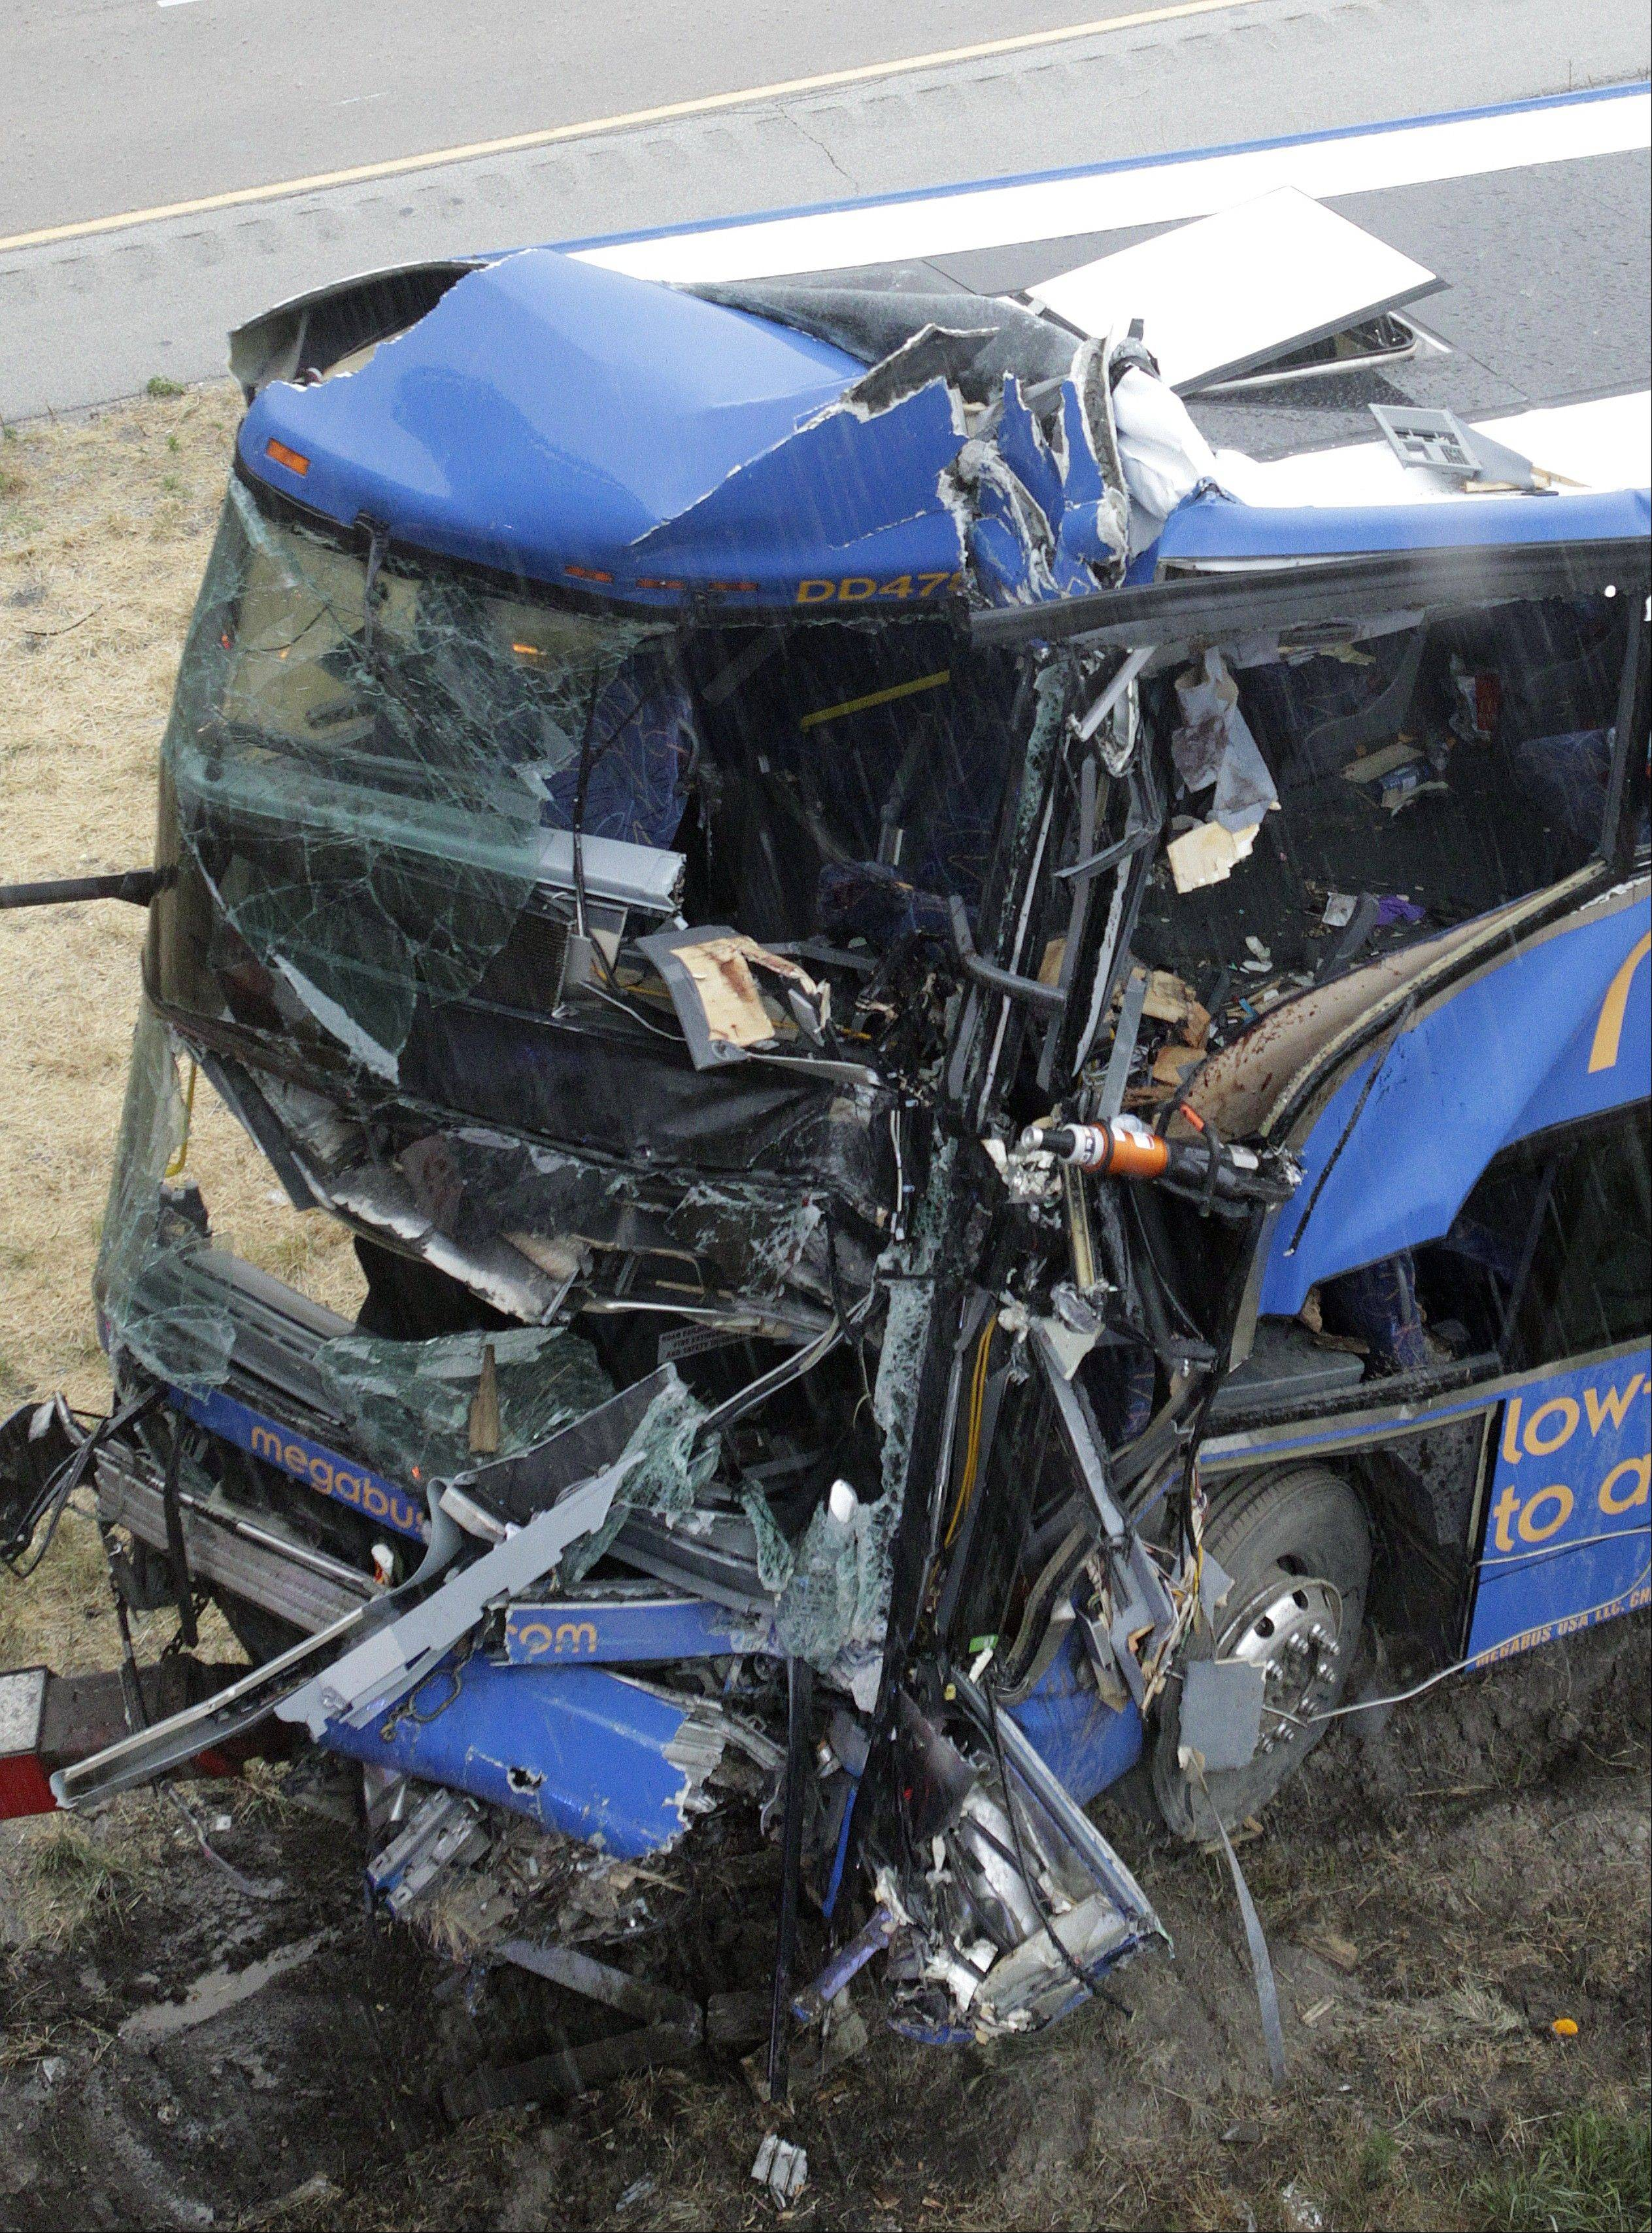 The wreckage of a Megabus is removed from the bridge support pillar that it slammed into after blowing a tire near downstate Litchfield on Aug. 2, killing one passenger and injuring nearly four dozen others.